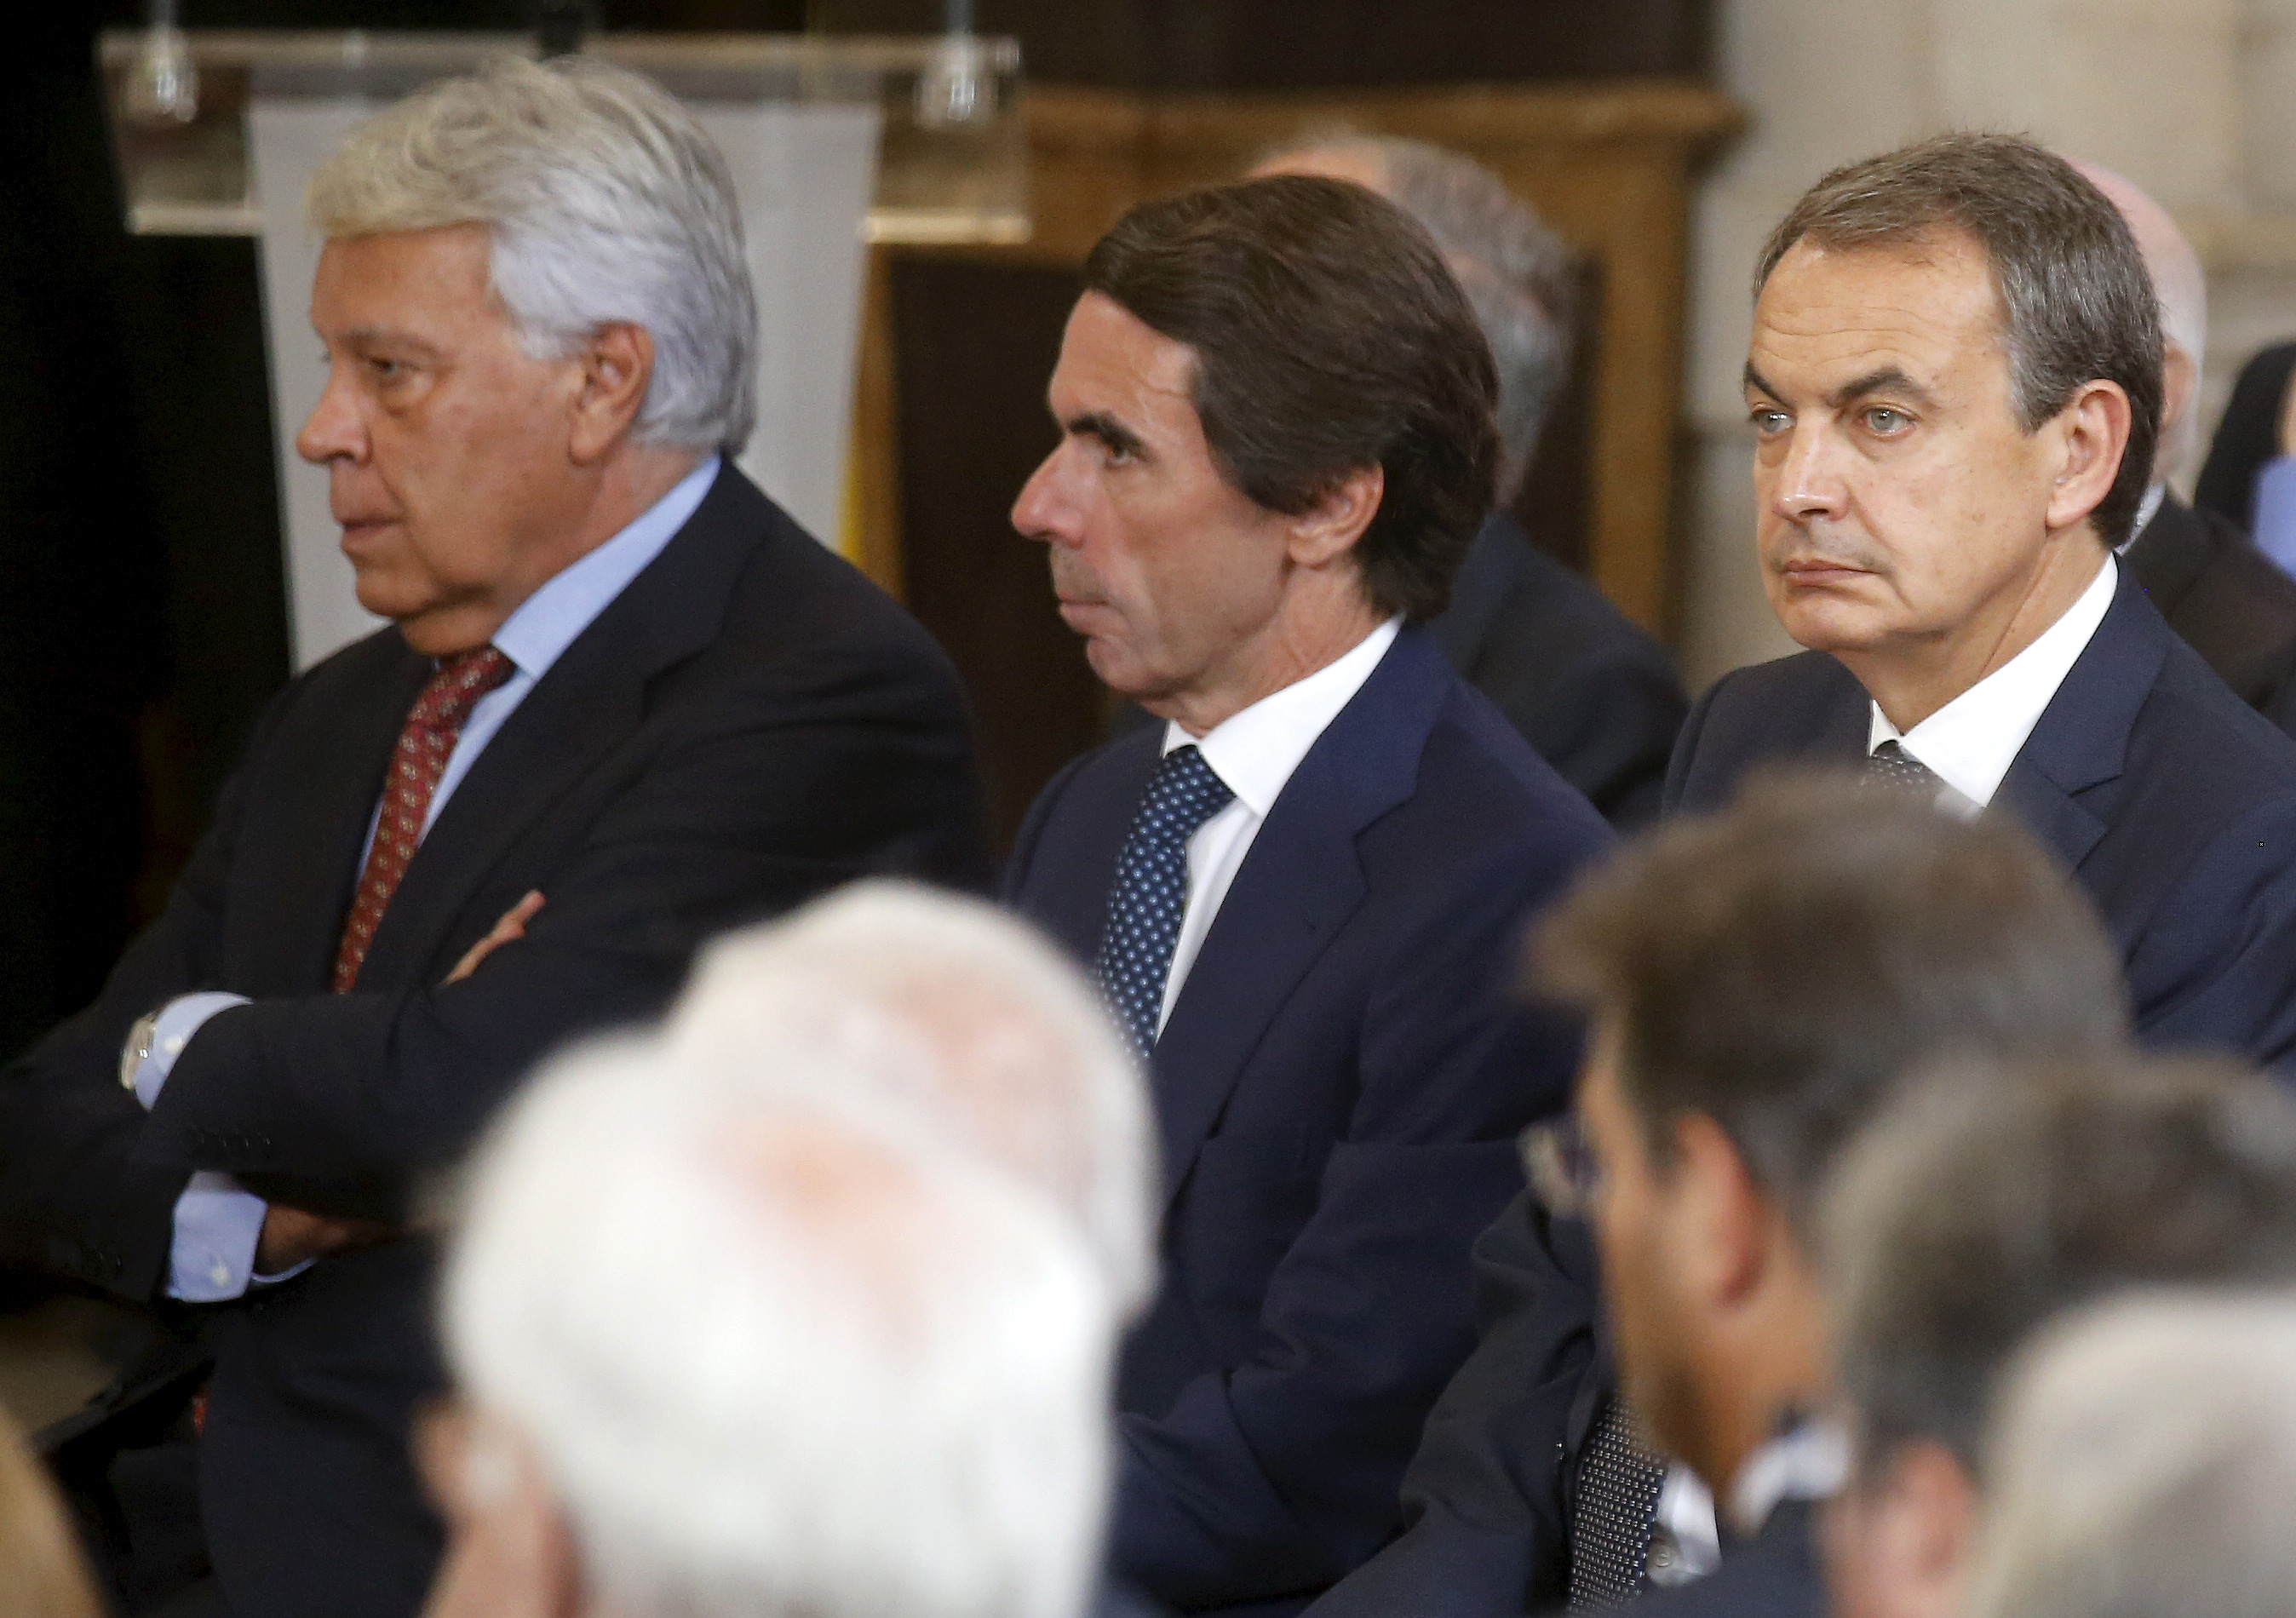 Former Spanish Prime Ministers Jose Luis Rodriguez Zapatero (R), Jose Maria Aznar (C) and Felipe Gonzalez attend a celebration to mark the 30th anniversary of Spain's accession to the European Communities, at Madrid's royal palace, Spain, June 24, 2015. REUTERS/Andrea Comas - RTR4YRLK